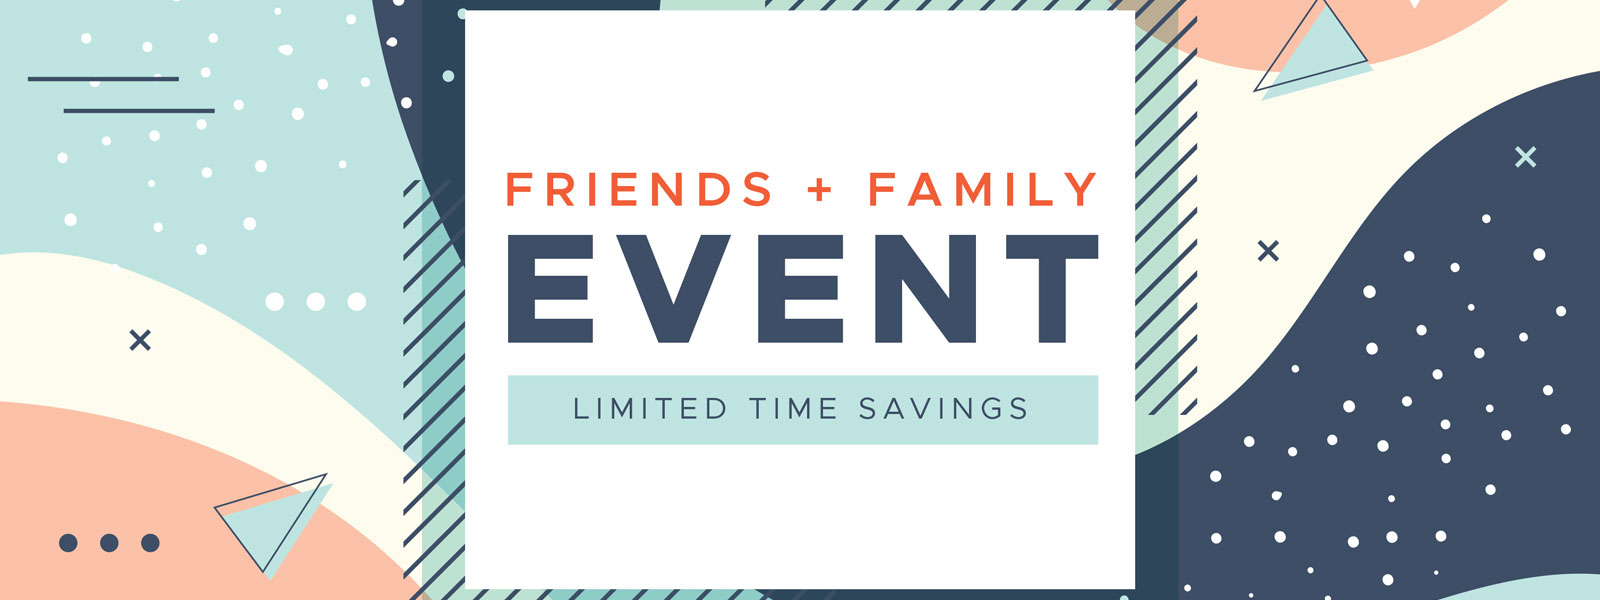 Friends-Family-Event-Banner_1